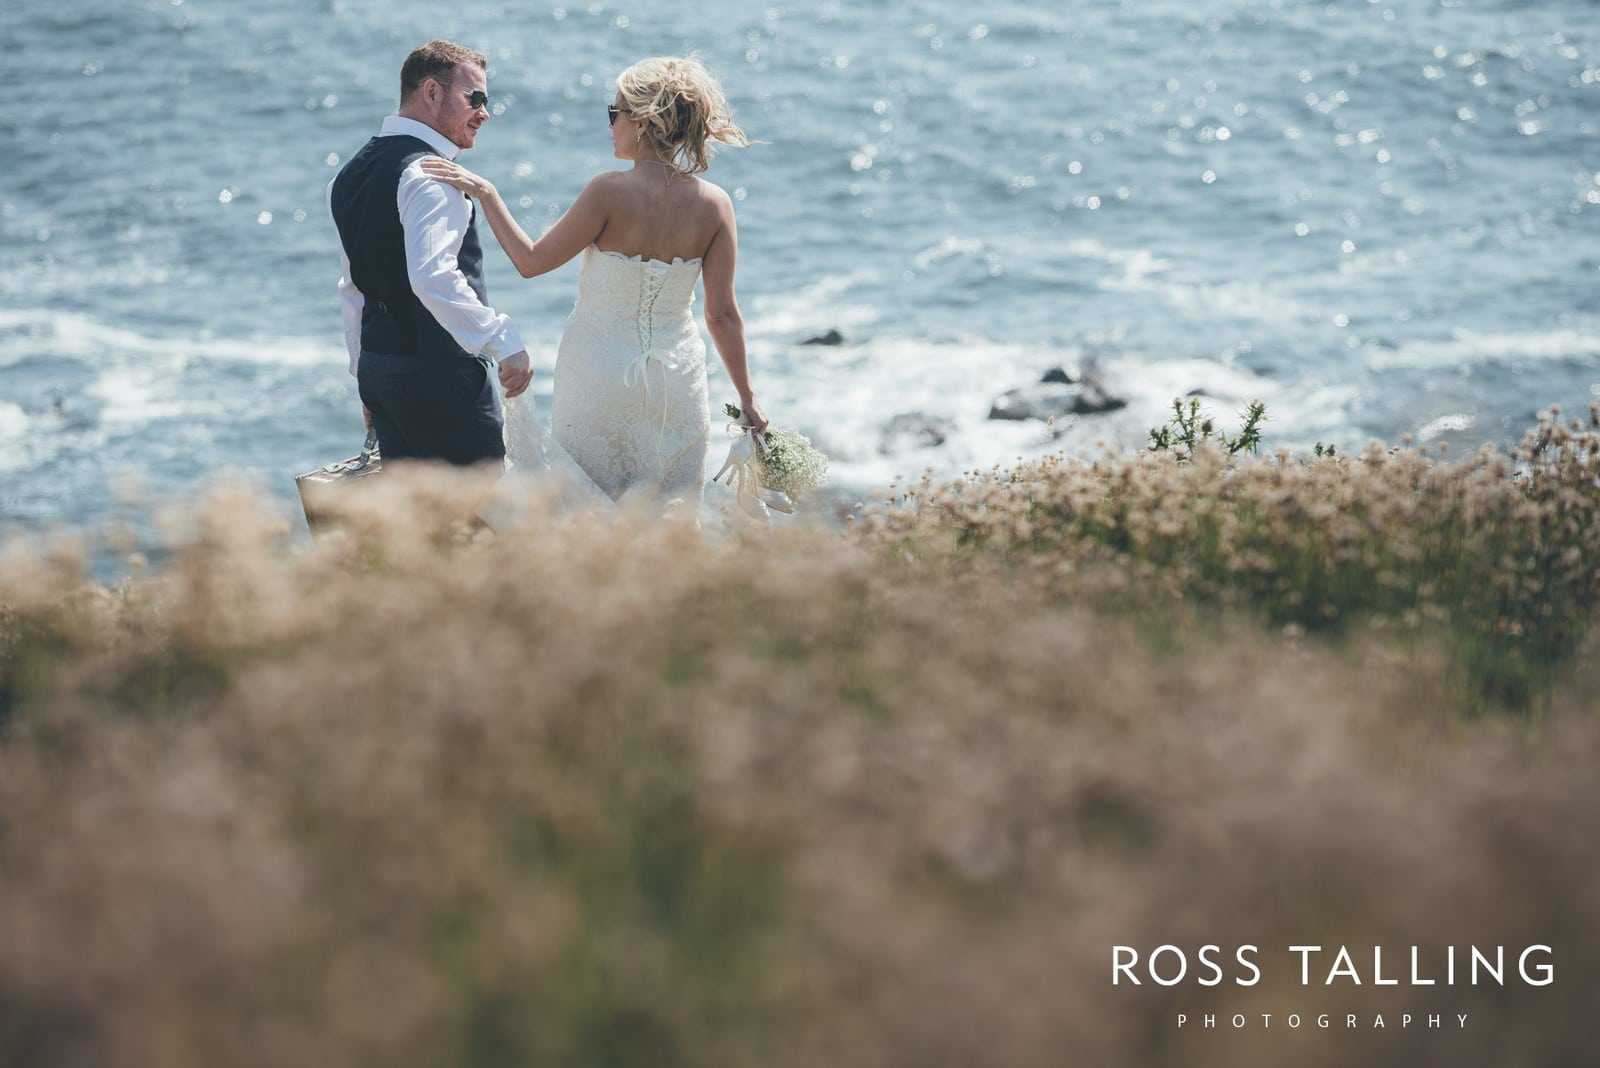 Boho Elopement Wedding Photography Cornwall - Stacey and Steve_0060